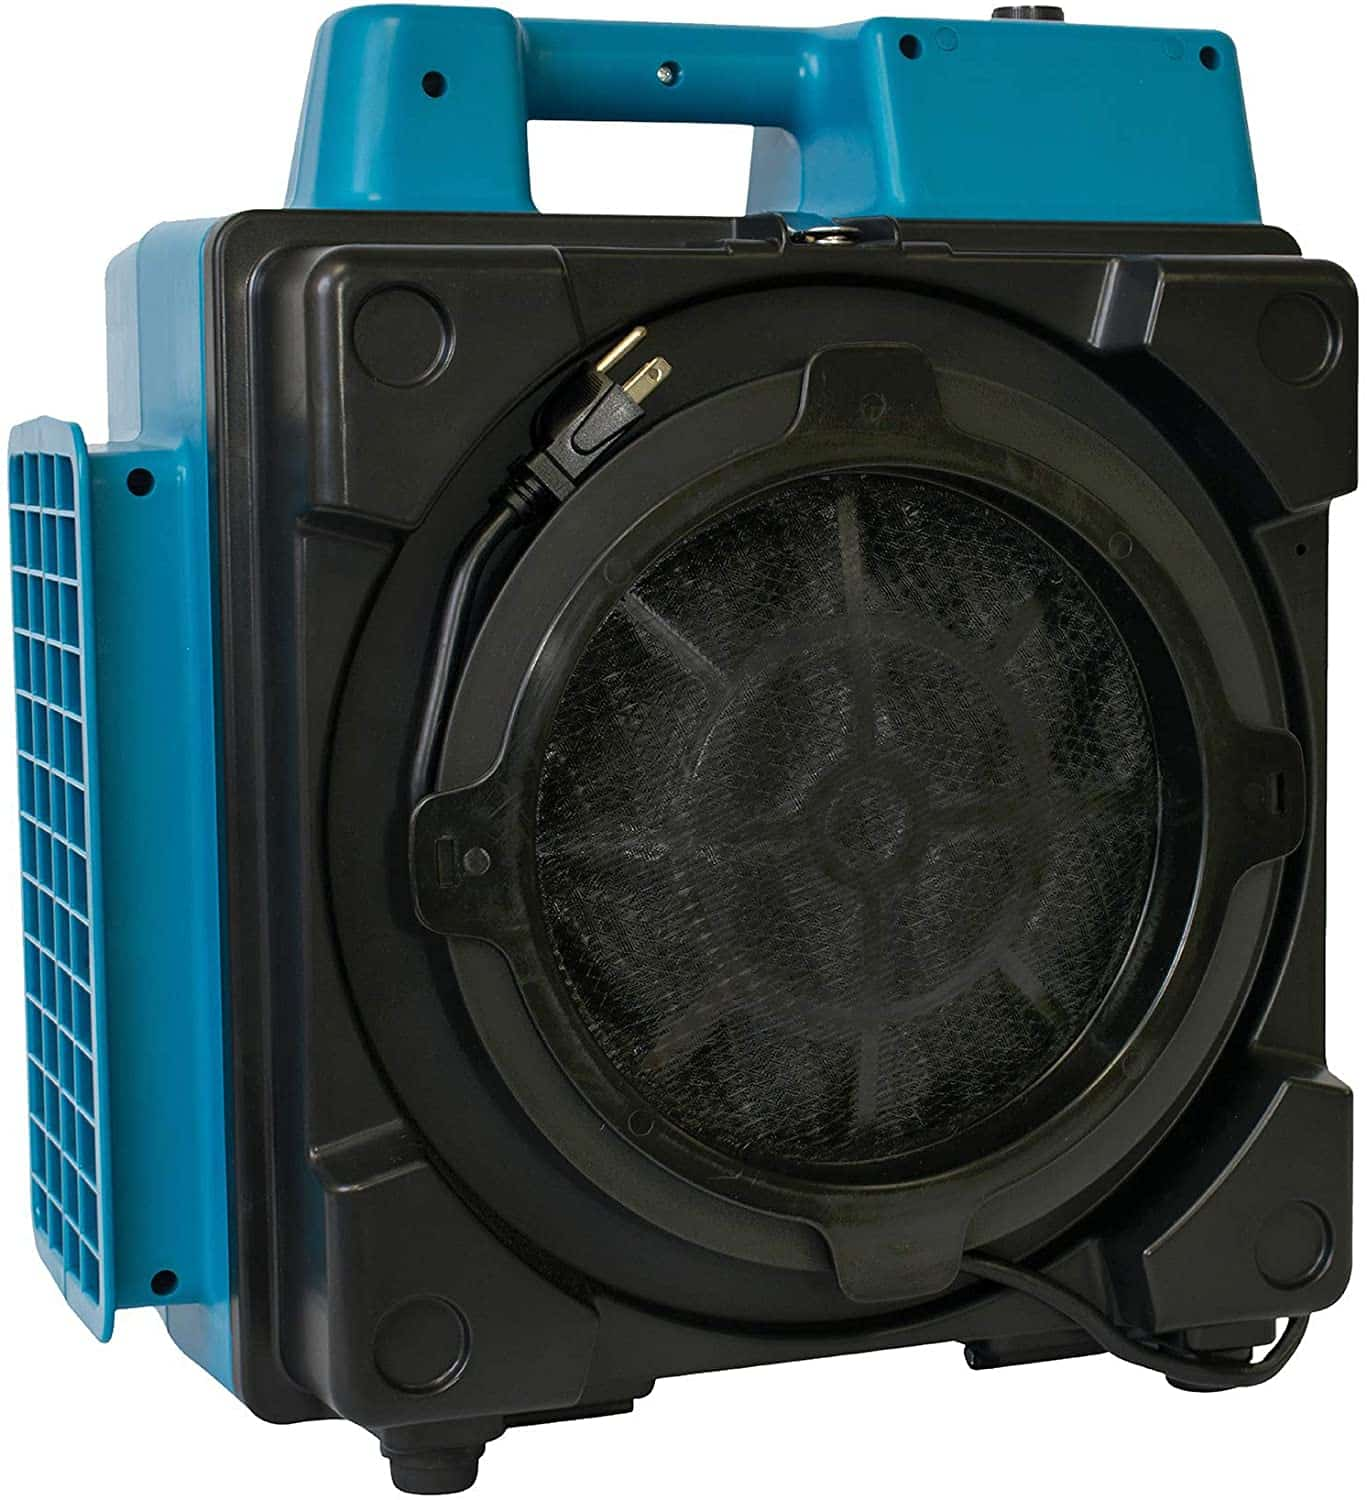 XPOWER X-2580 Professional 4-Stage Air Scrubber